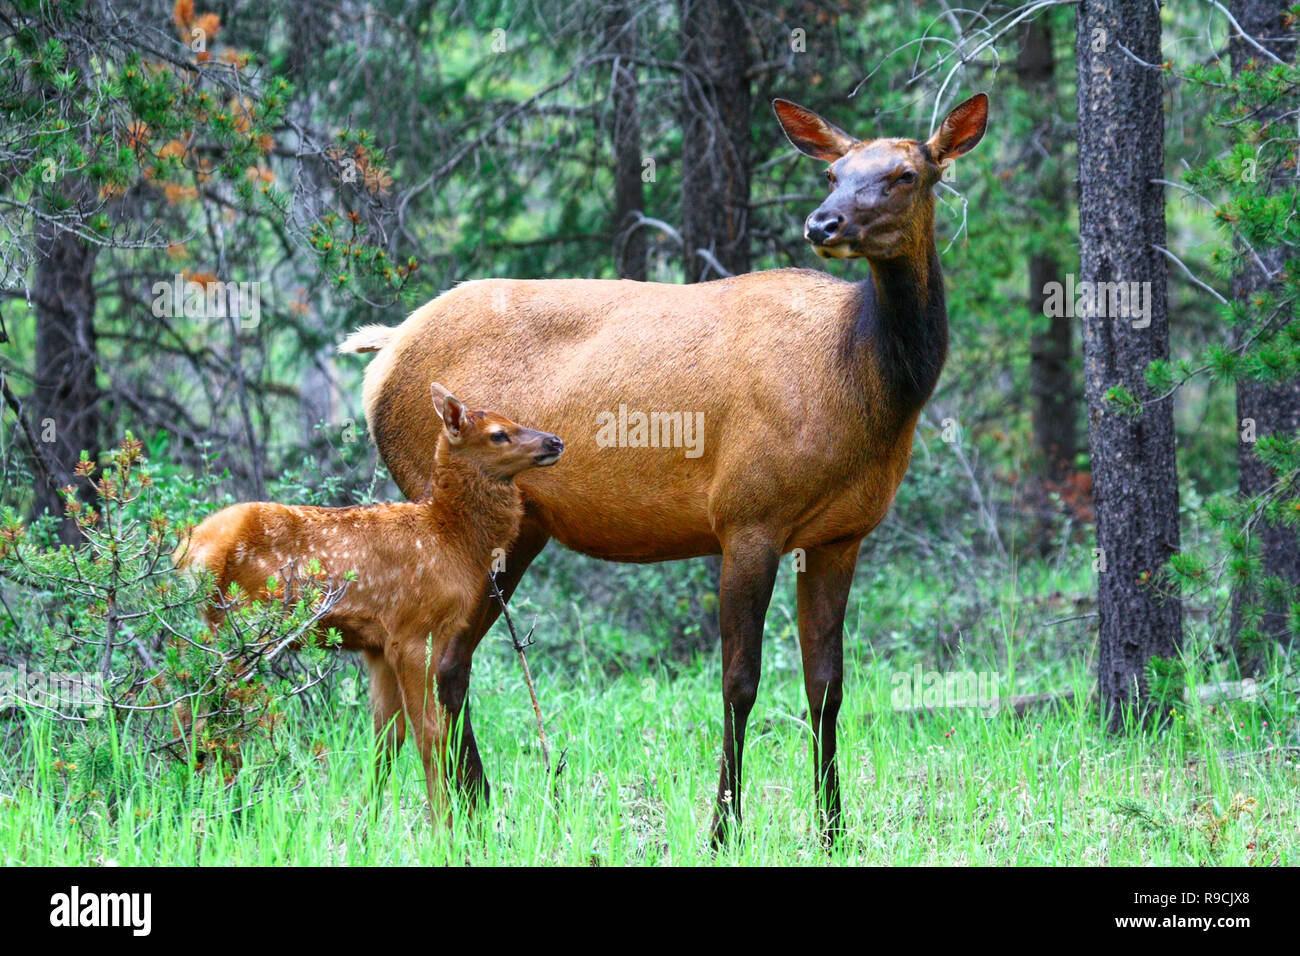 40,717.00111 beautiful Elk cow & calf baby (Cervus elaphus, Cervidae) with spots standing in young trees conifer forest meadow - Stock Image